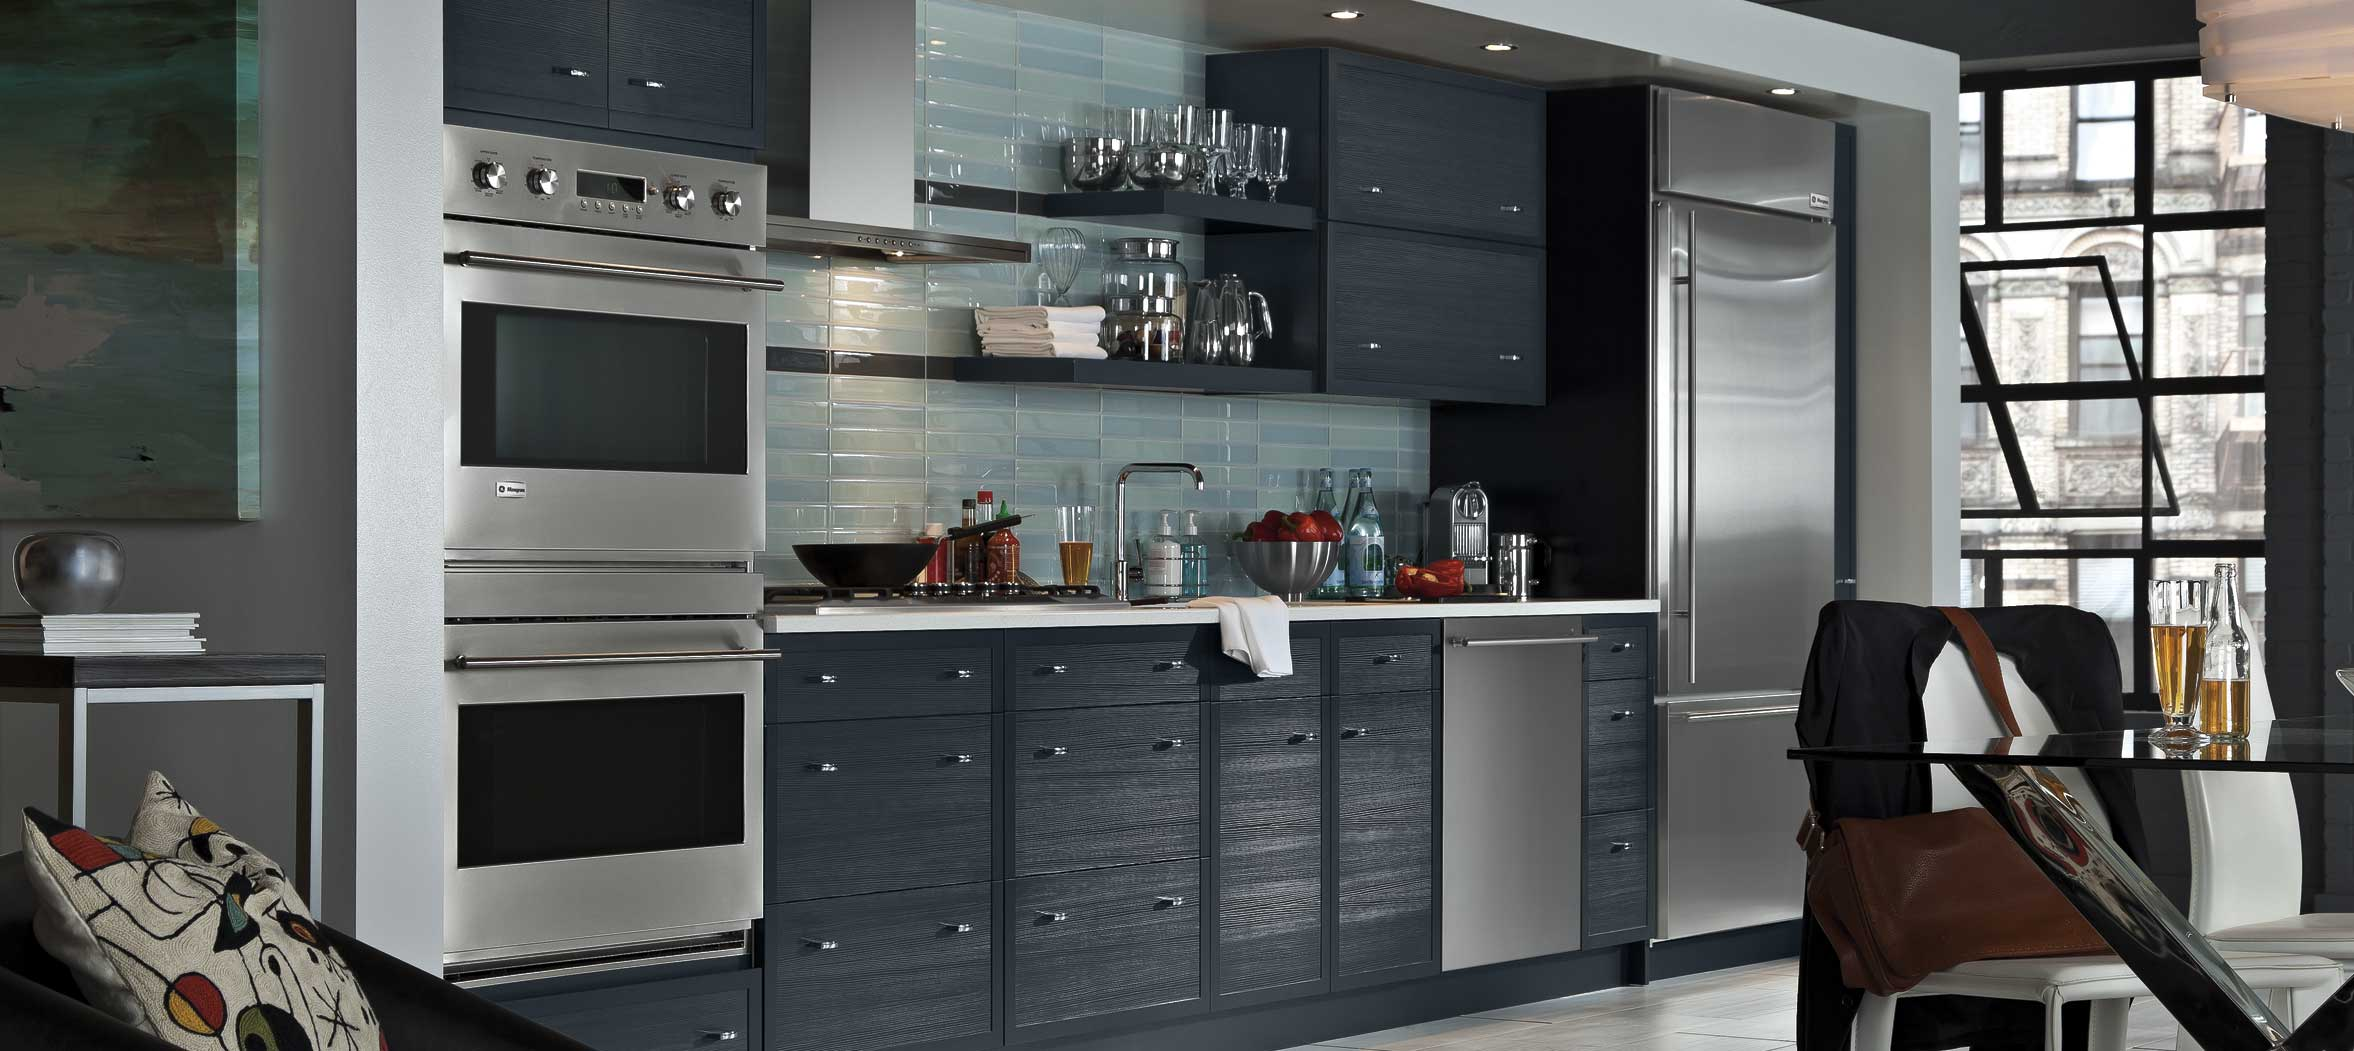 Explore these kitchen layout options fairfax contractor for Kitchen wall island